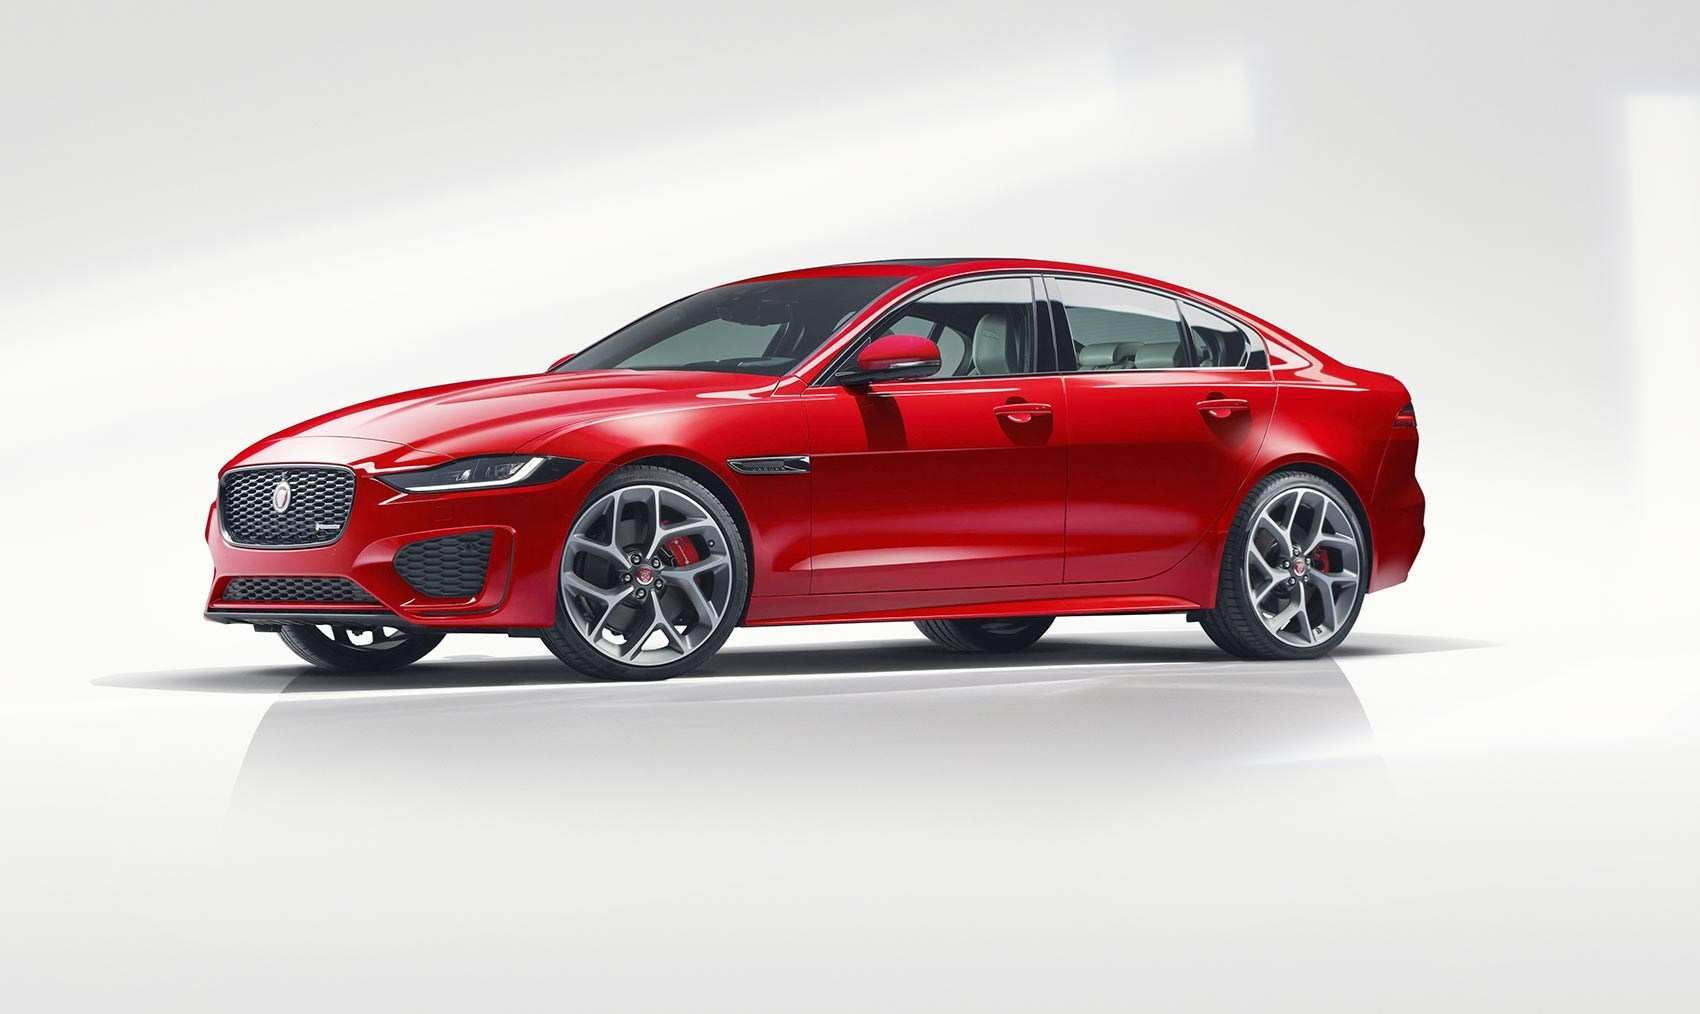 48 Gallery of 2019 Jaguar Cost Specs Pictures by 2019 Jaguar Cost Specs